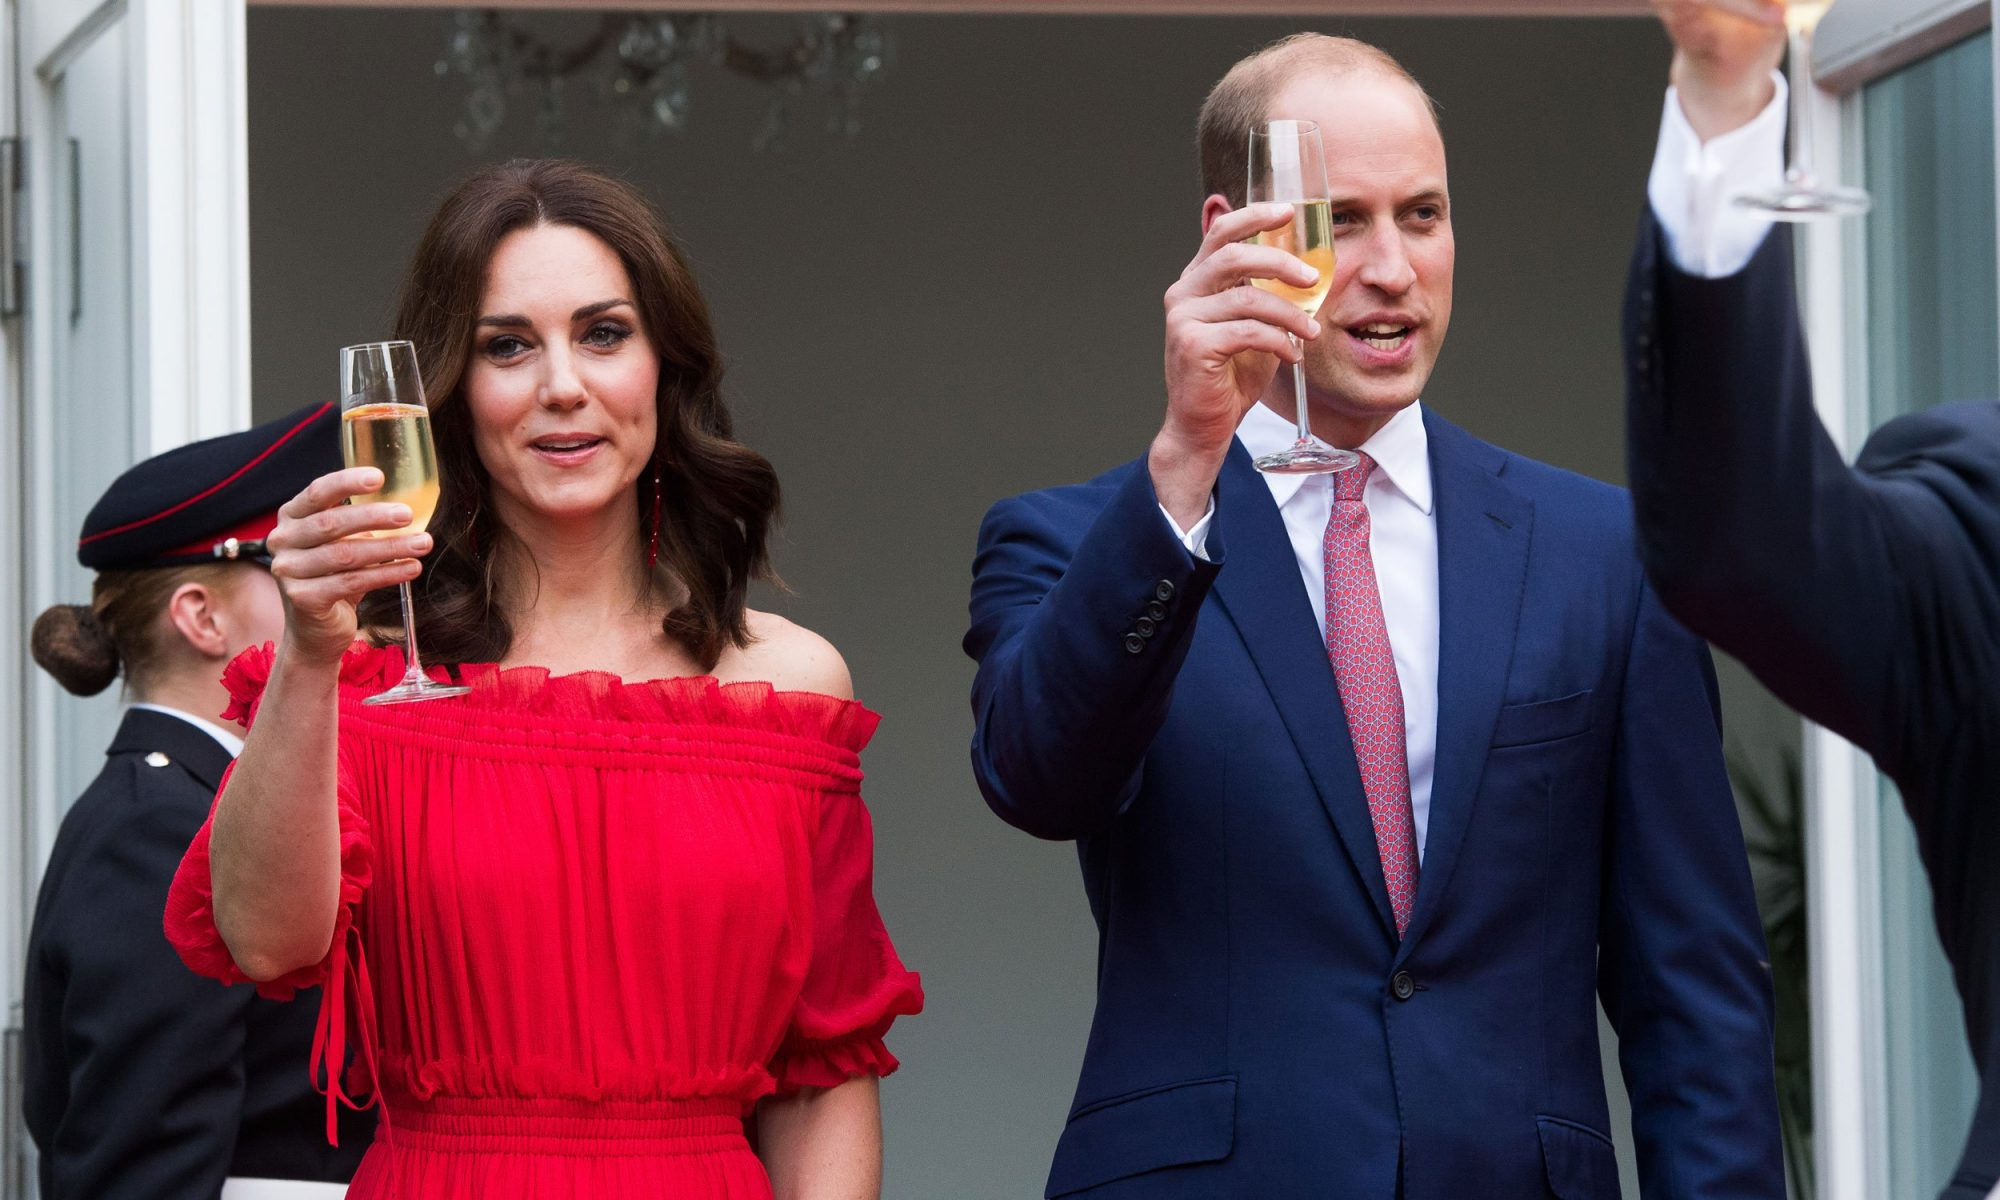 kate and wills with champagne